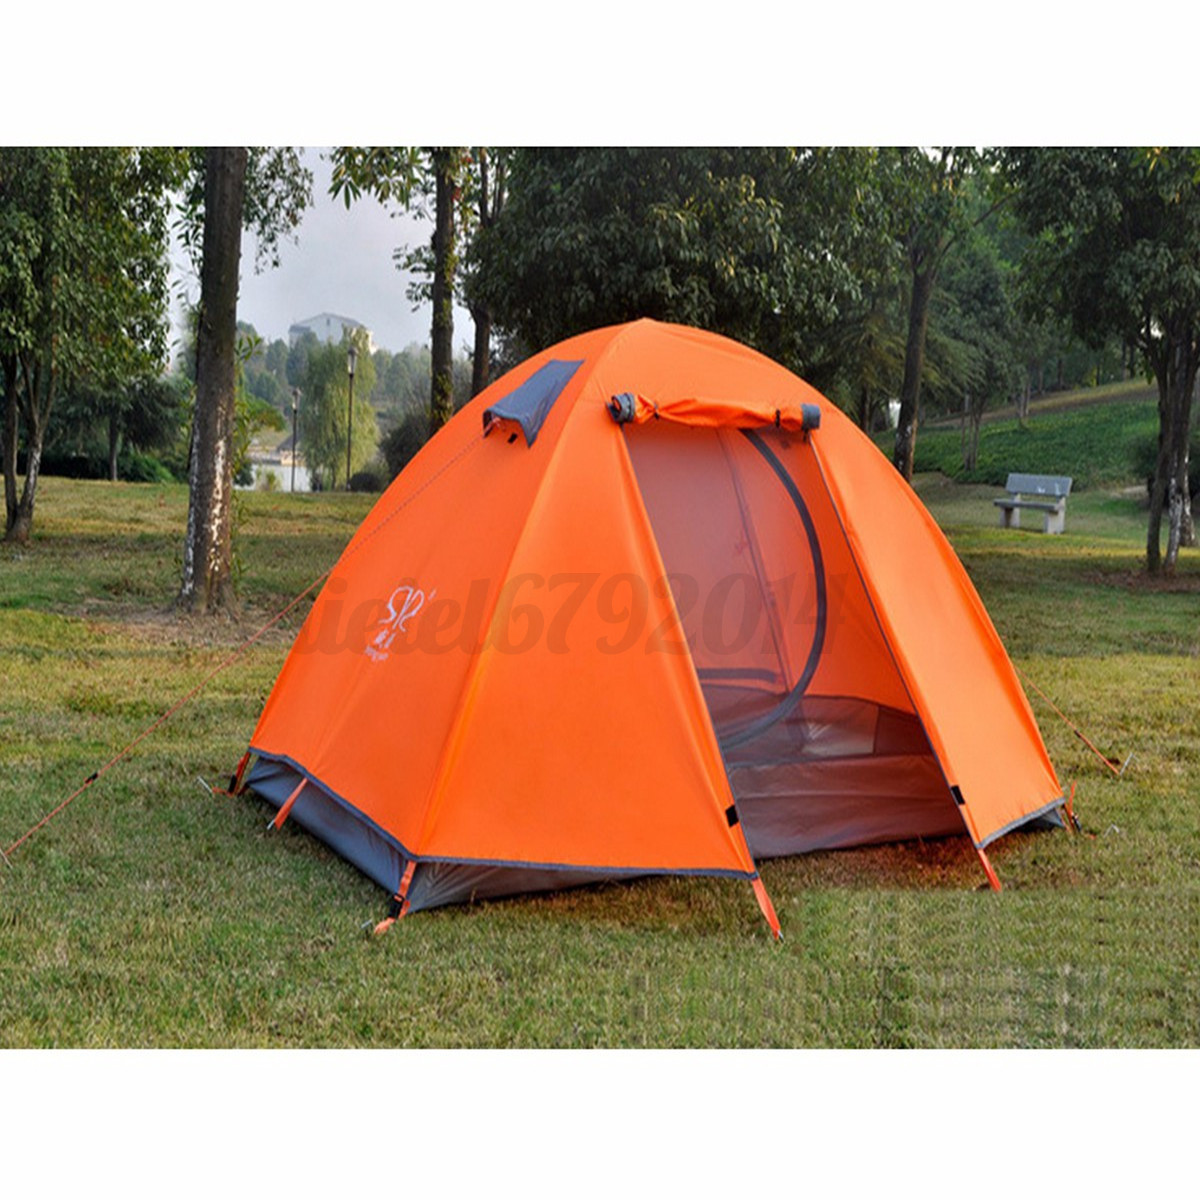 Portable Dome Tents : Portable pop up dome tent sun shelter camping festival